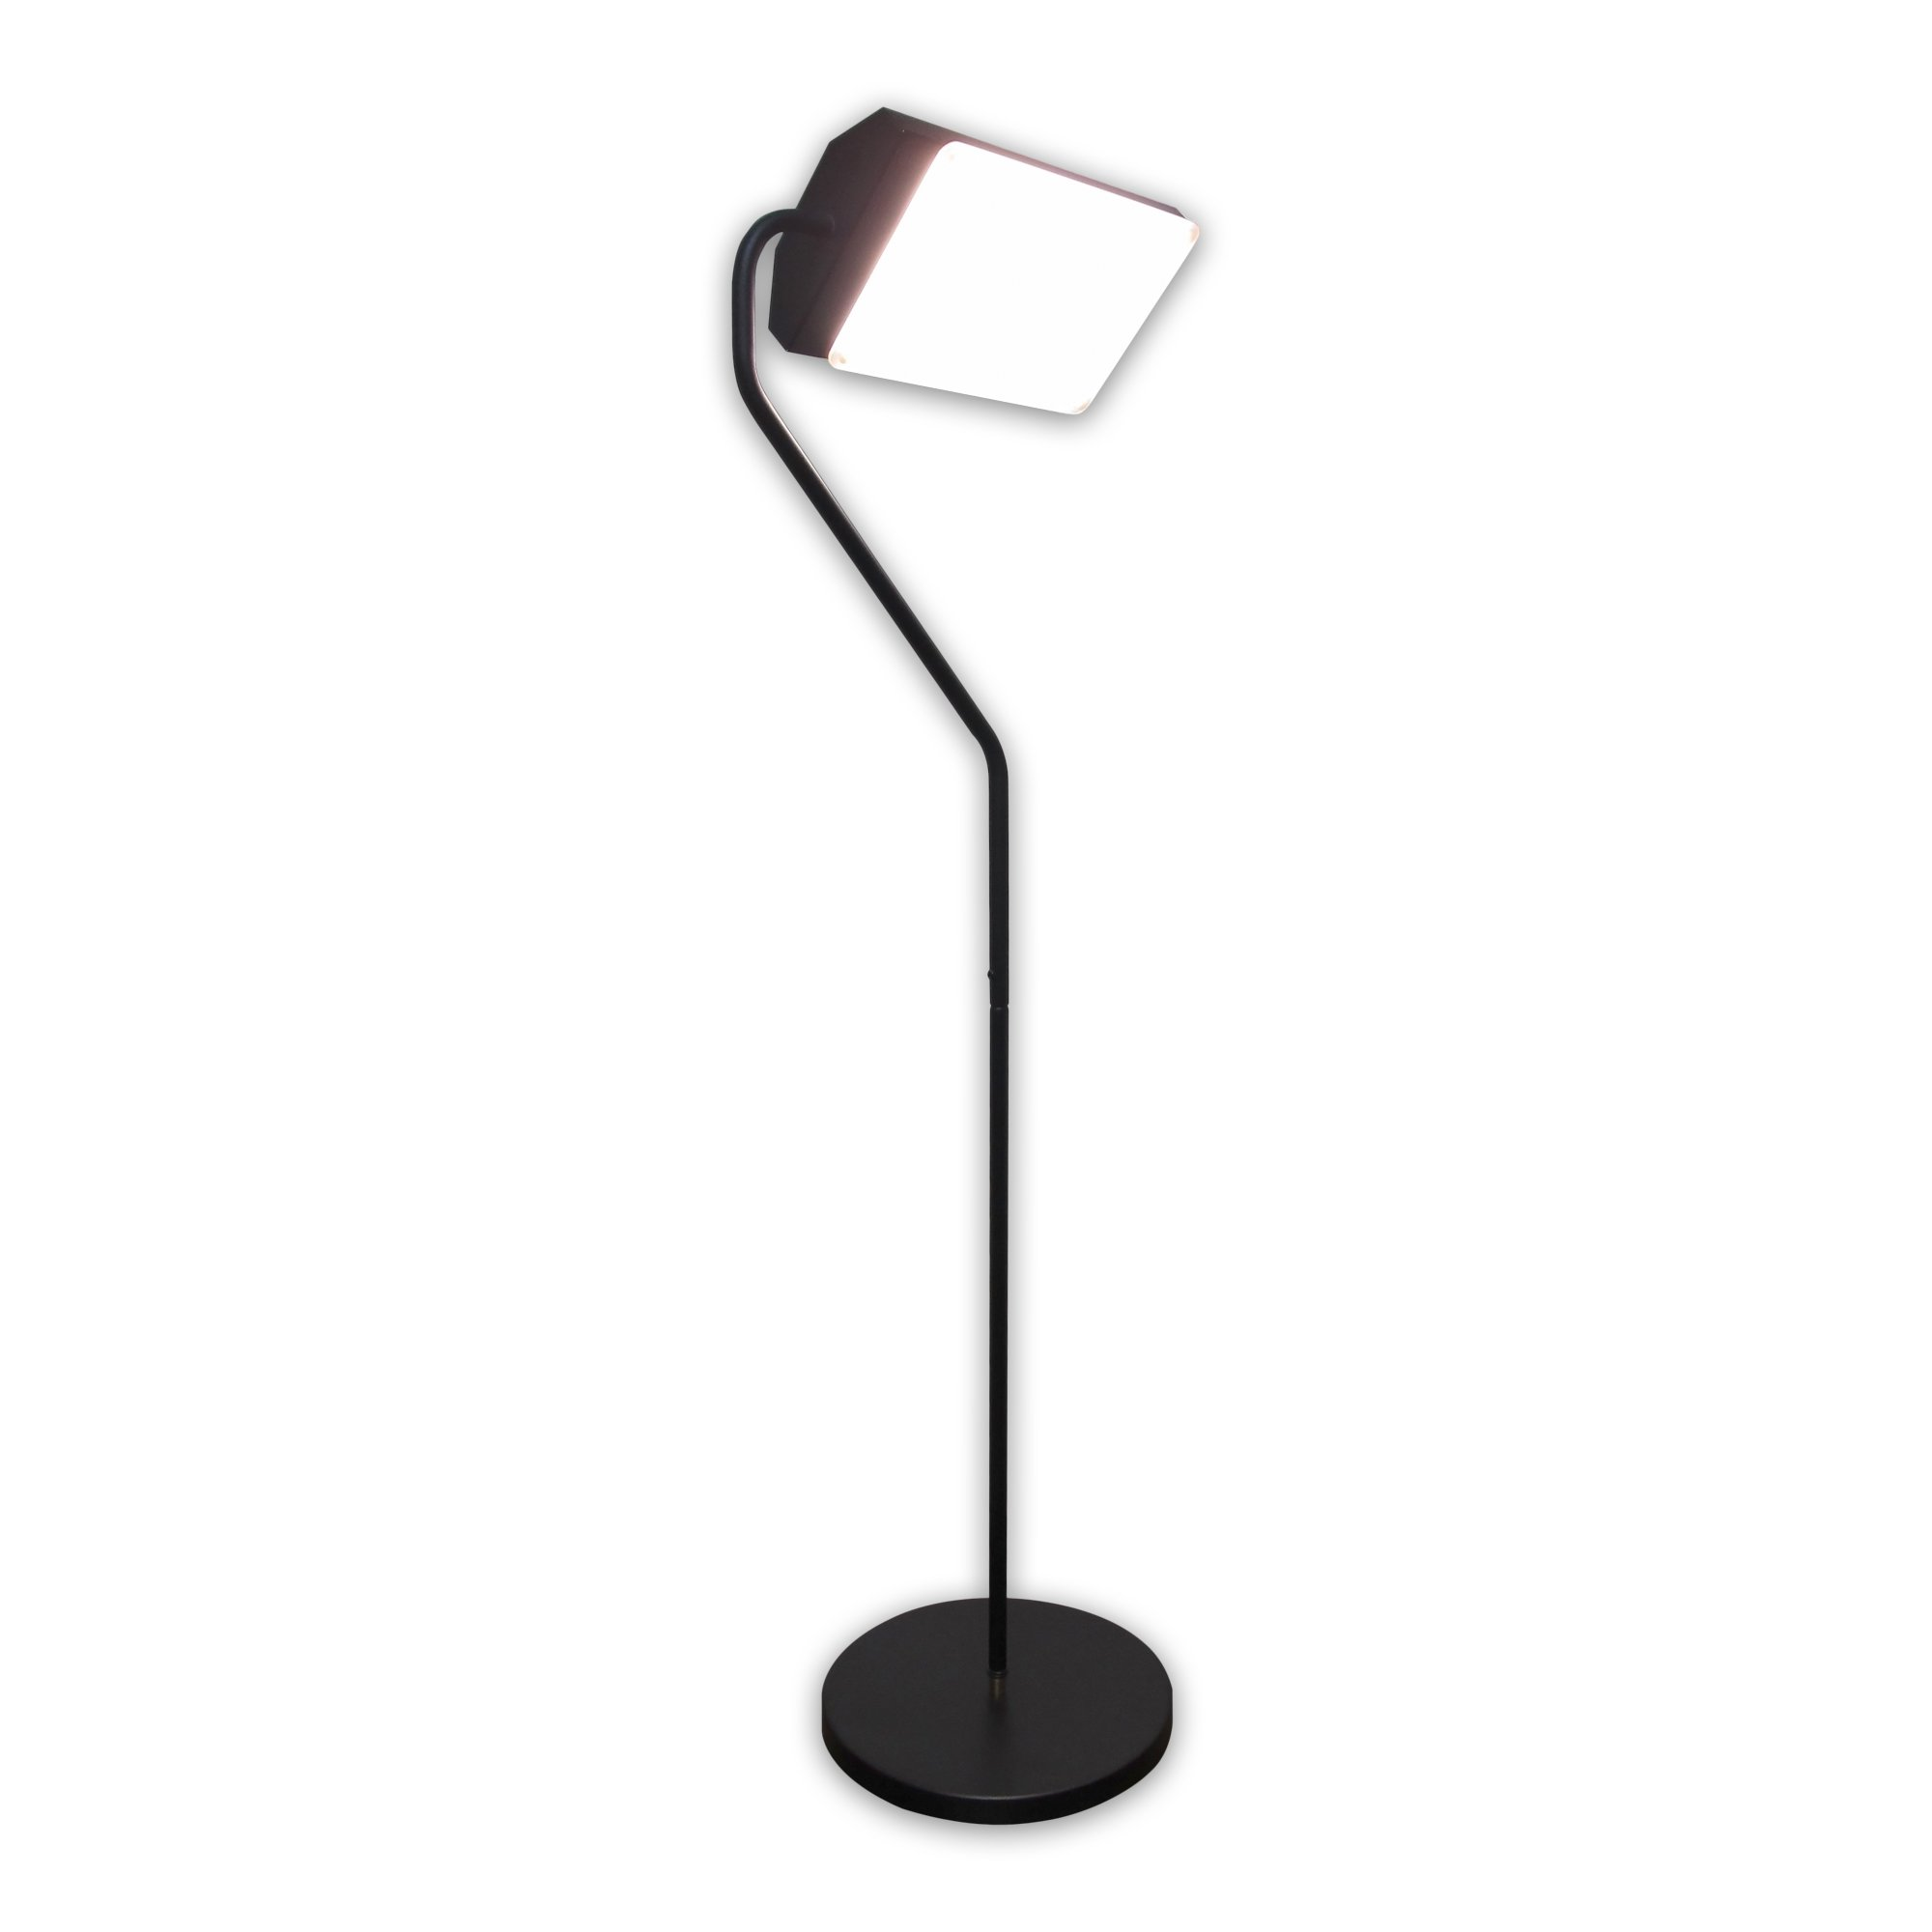 Flamingo 10,000 Lux Bright Light Therapy Floor Lamp, Black by Northern Light Technologies